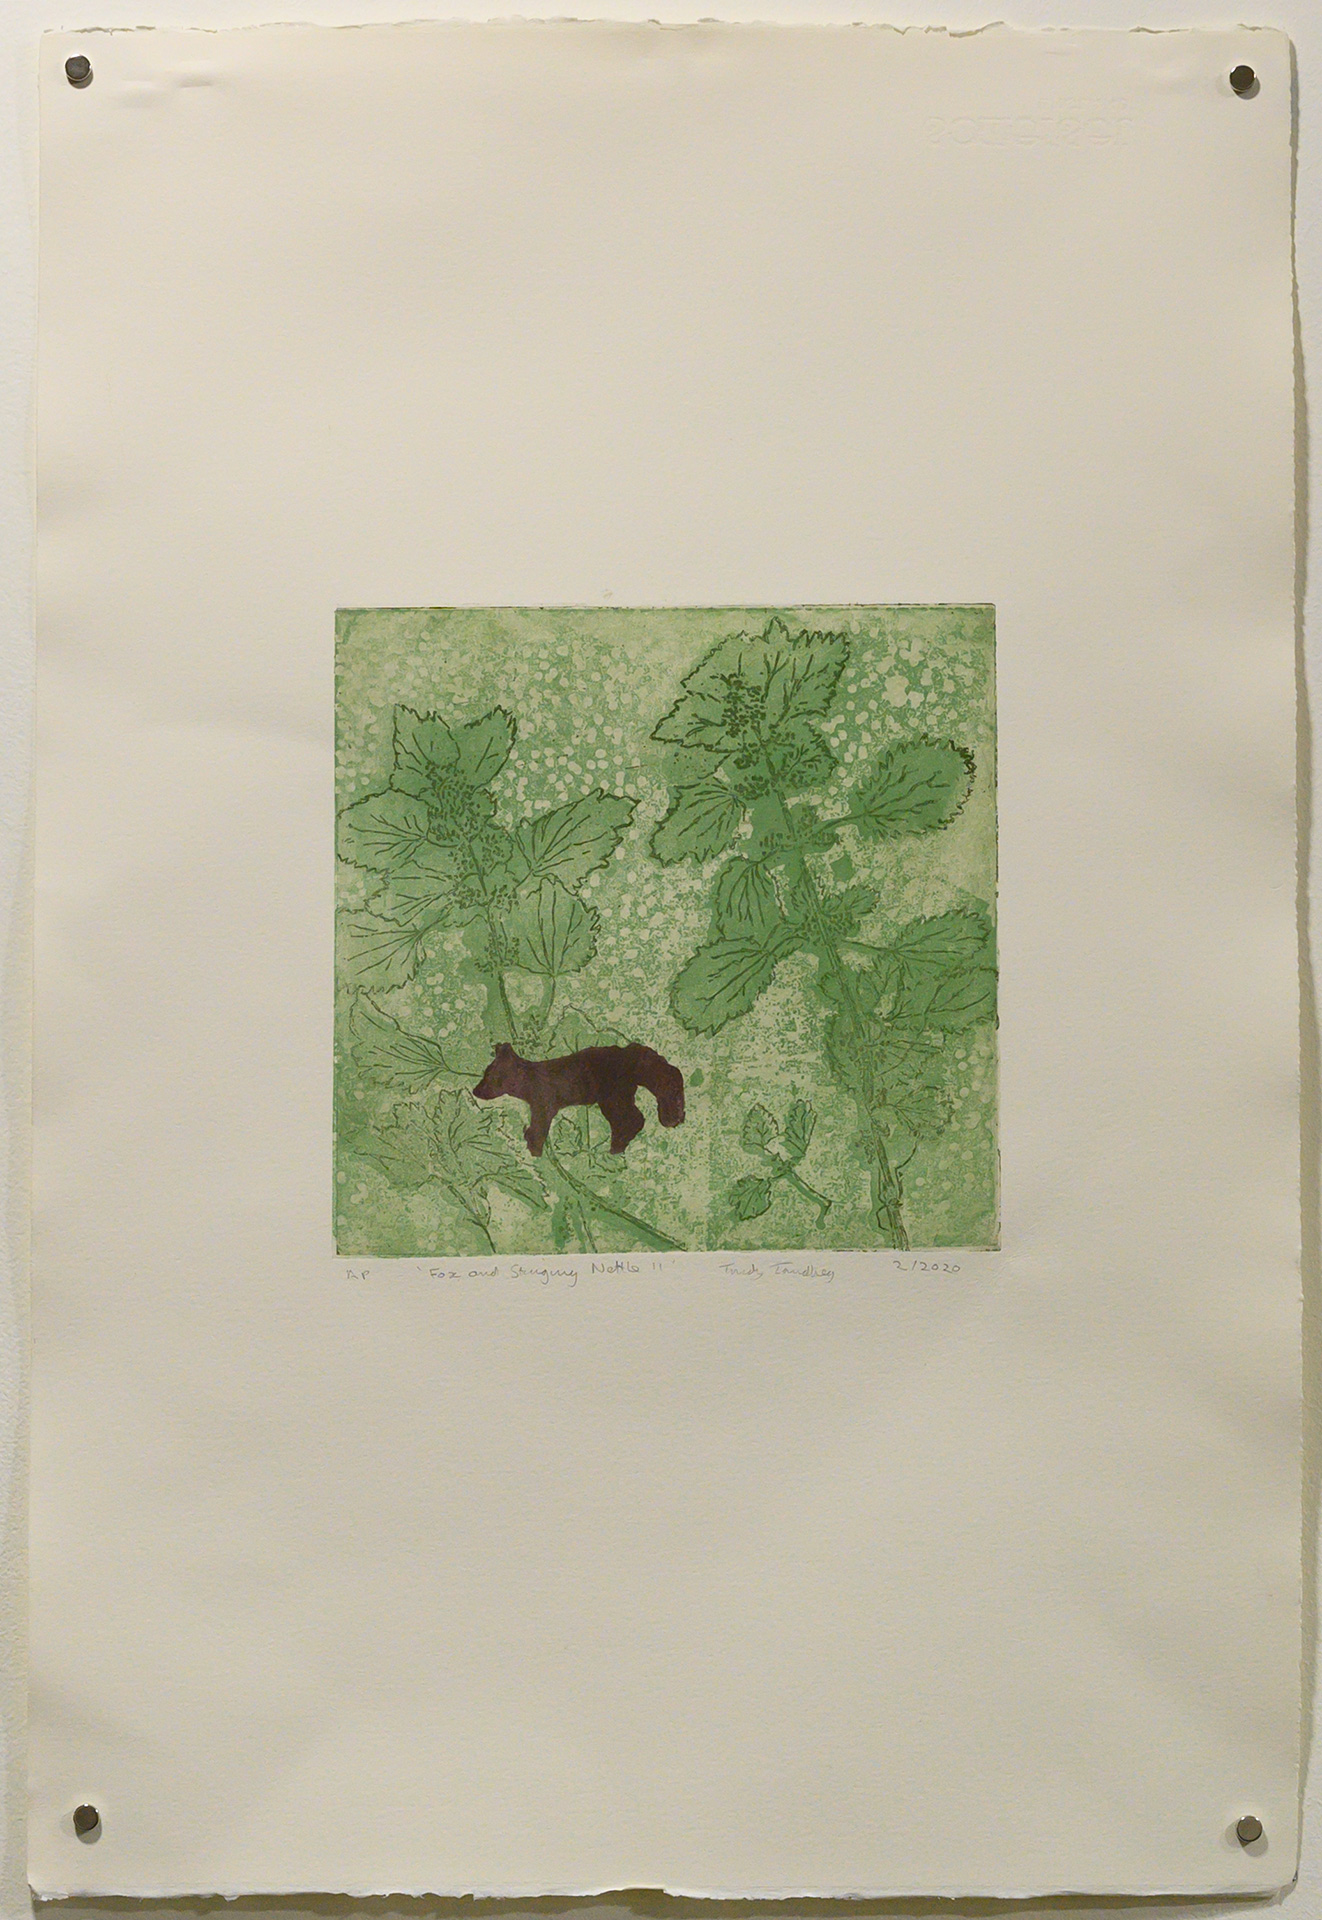 Unframed artwork by Trudy Tandberg of small fox silhouette on green background with detailed stinging nettle